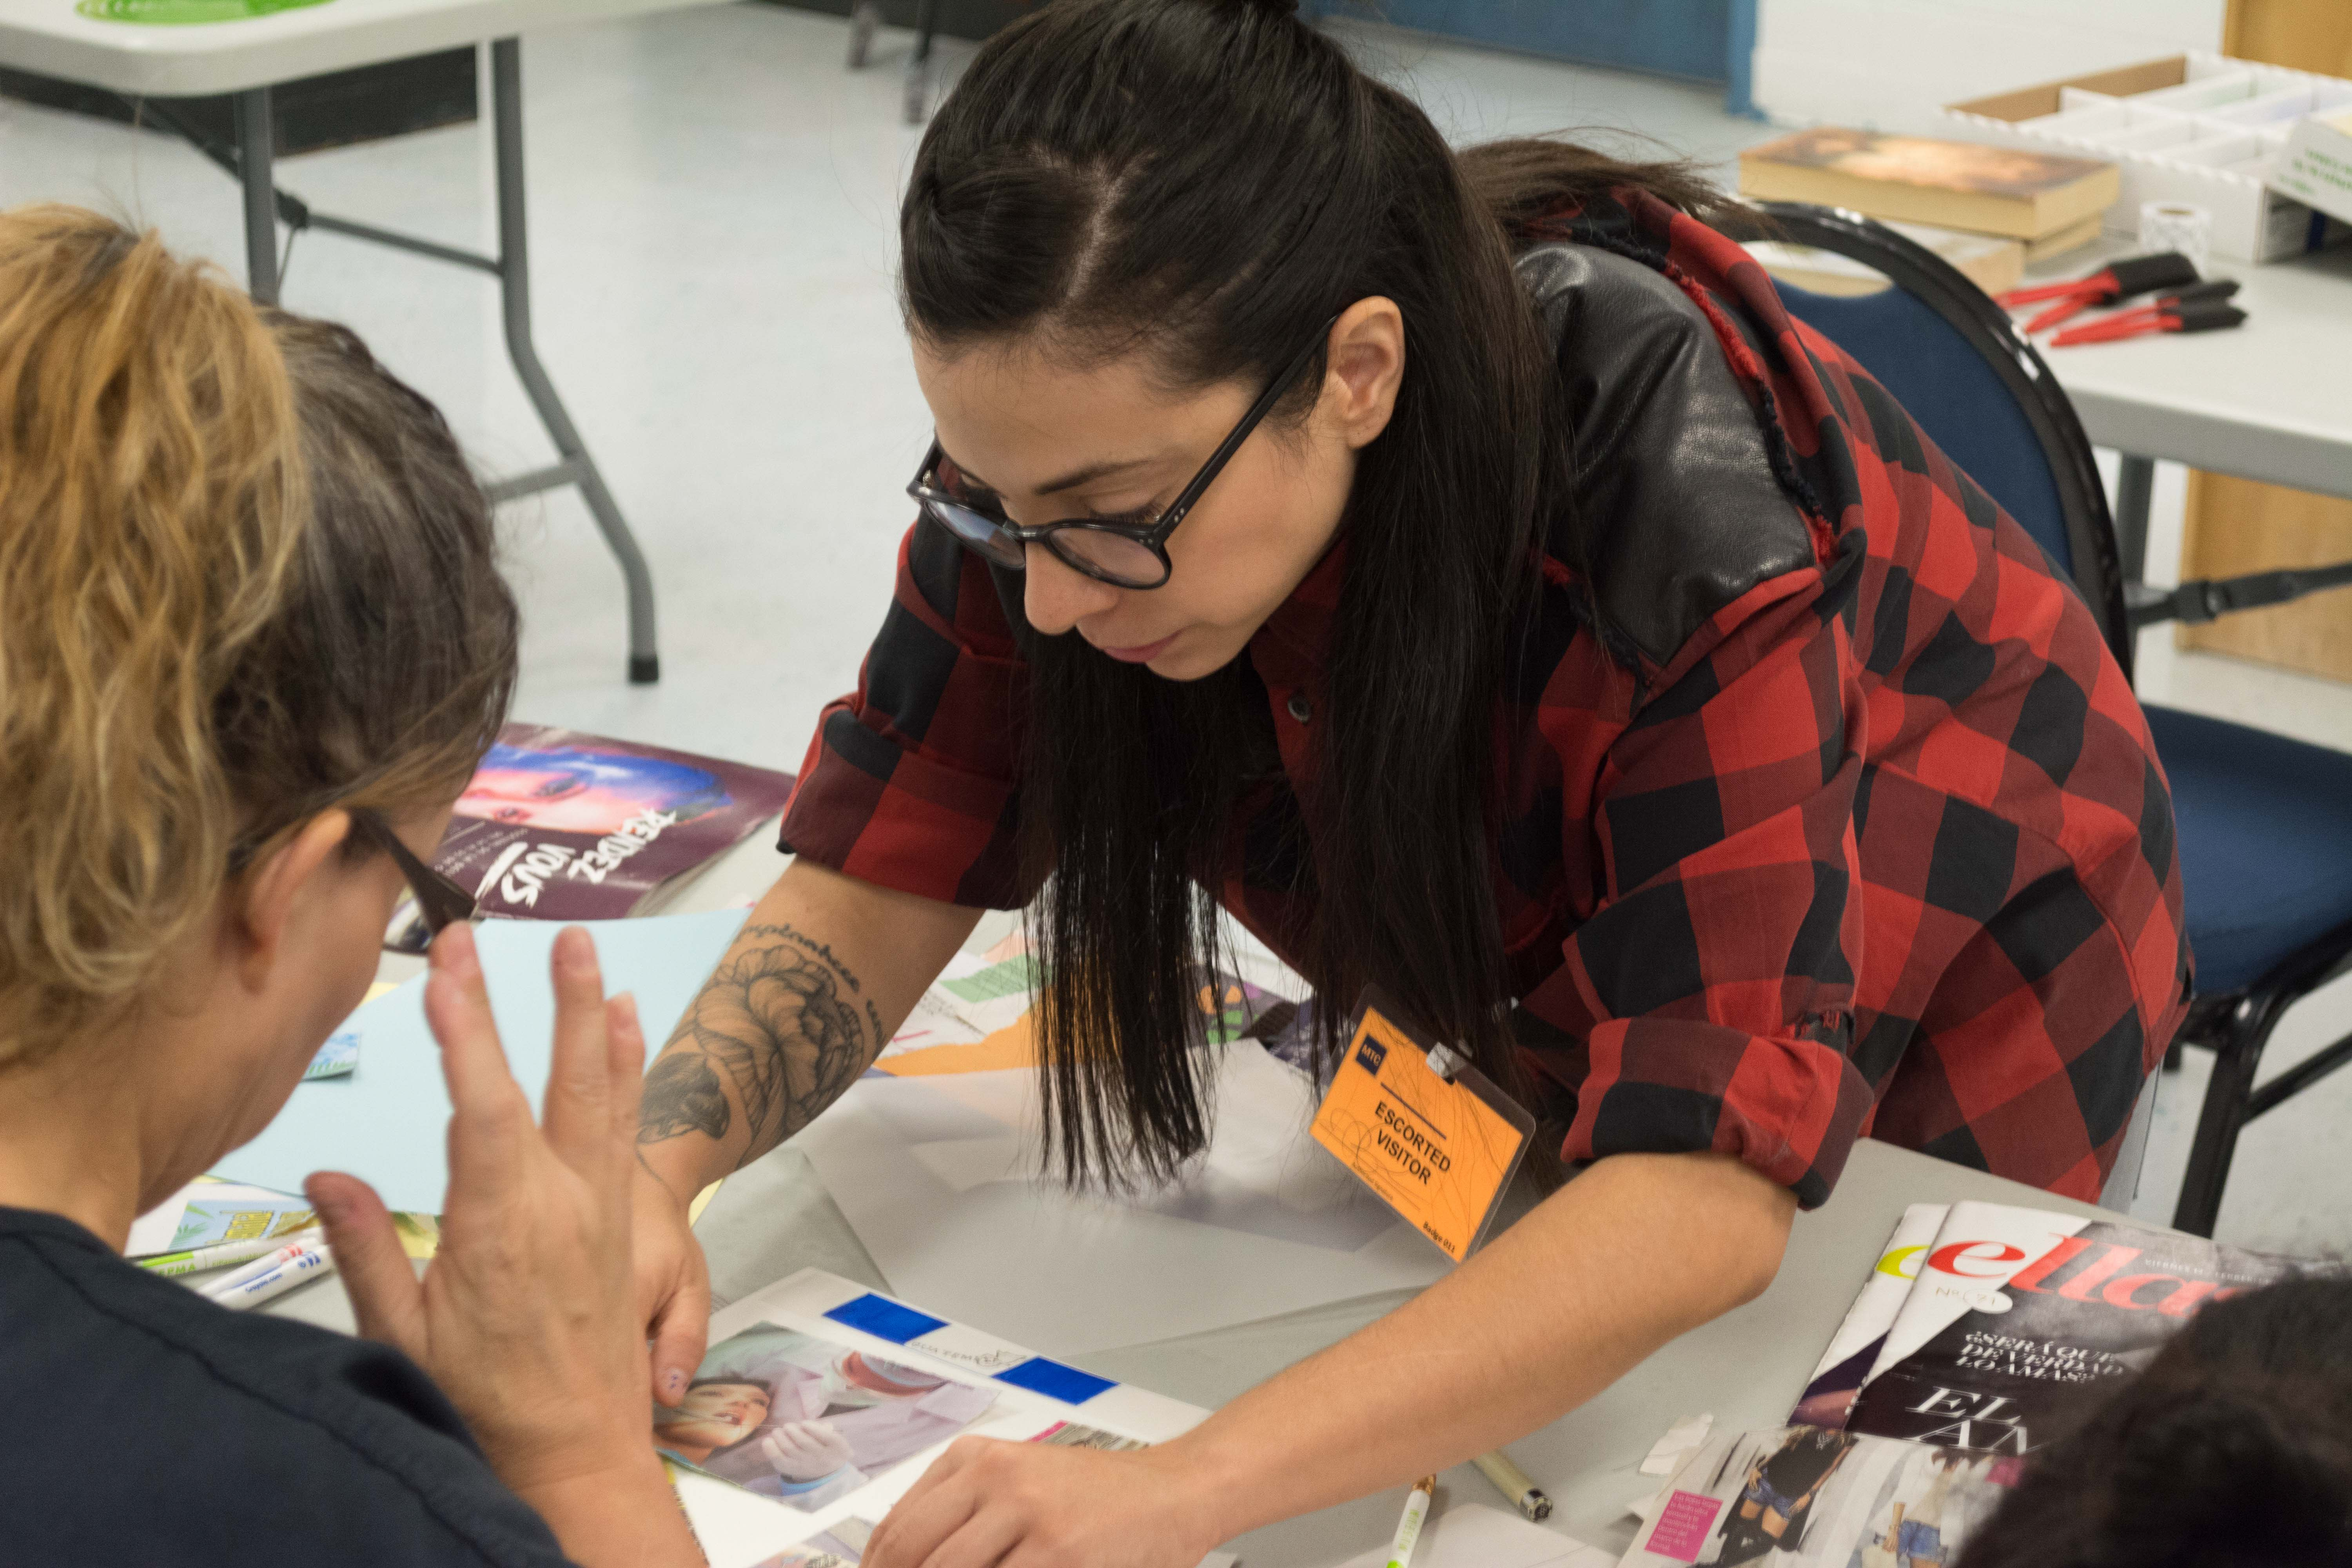 Artist Haydee Alonso hosts an art workshop at the Otero County Prison housing migrant women awaiting asylum proceedings in 2016.